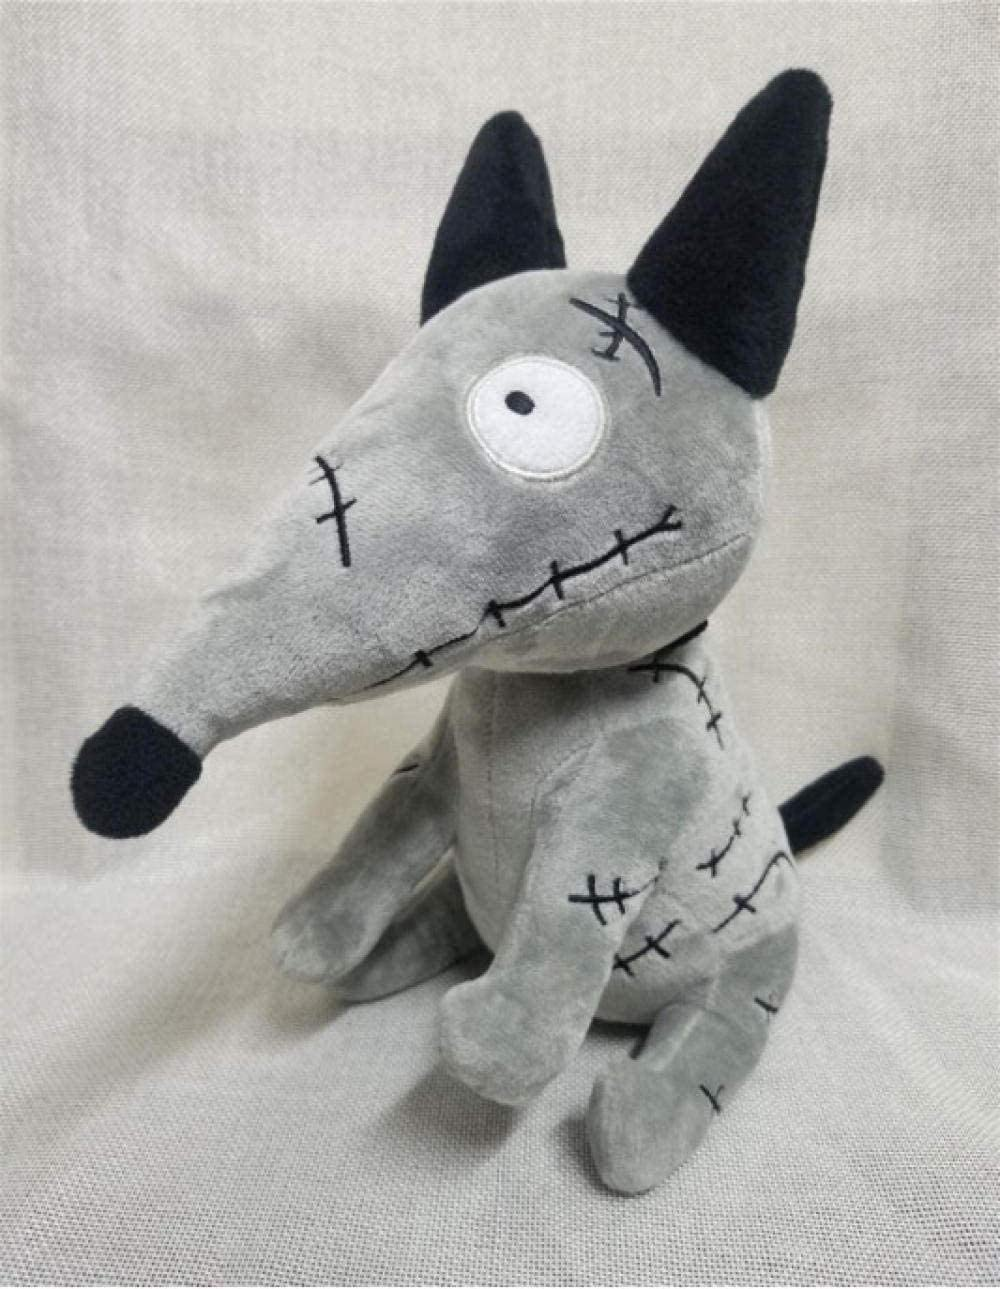 después de esto enero insulto  Amazon.com: N/D Rare Tim Burton Frankenweenie 10 Plush Sparky Dog Plush Toy:  Home & Kitchen